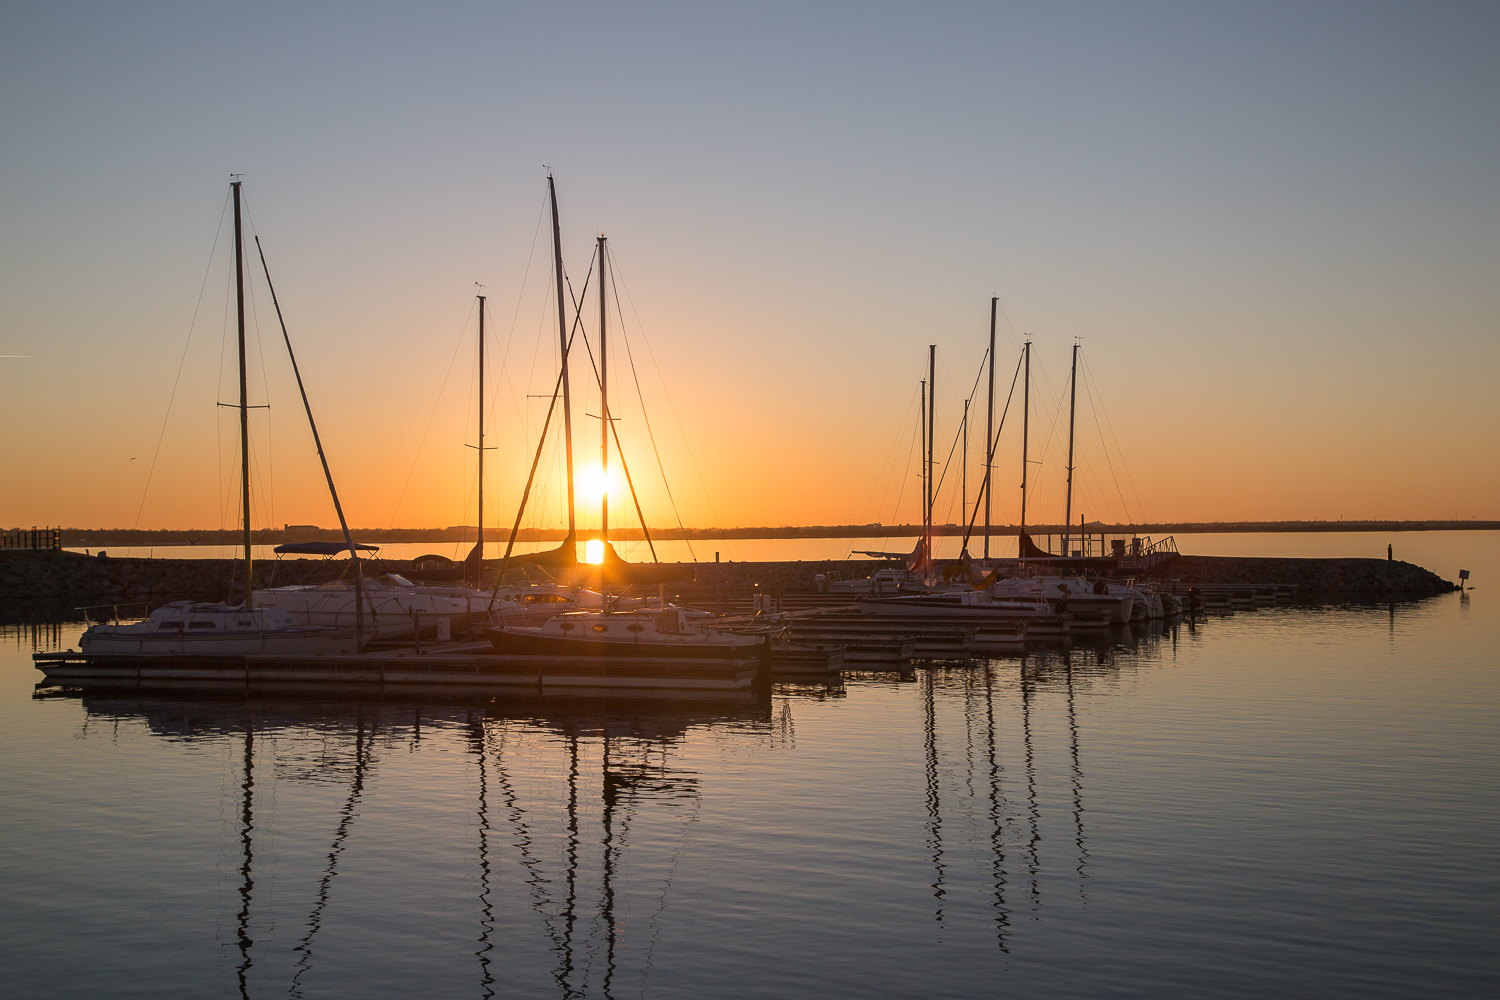 Sunset over sail boats